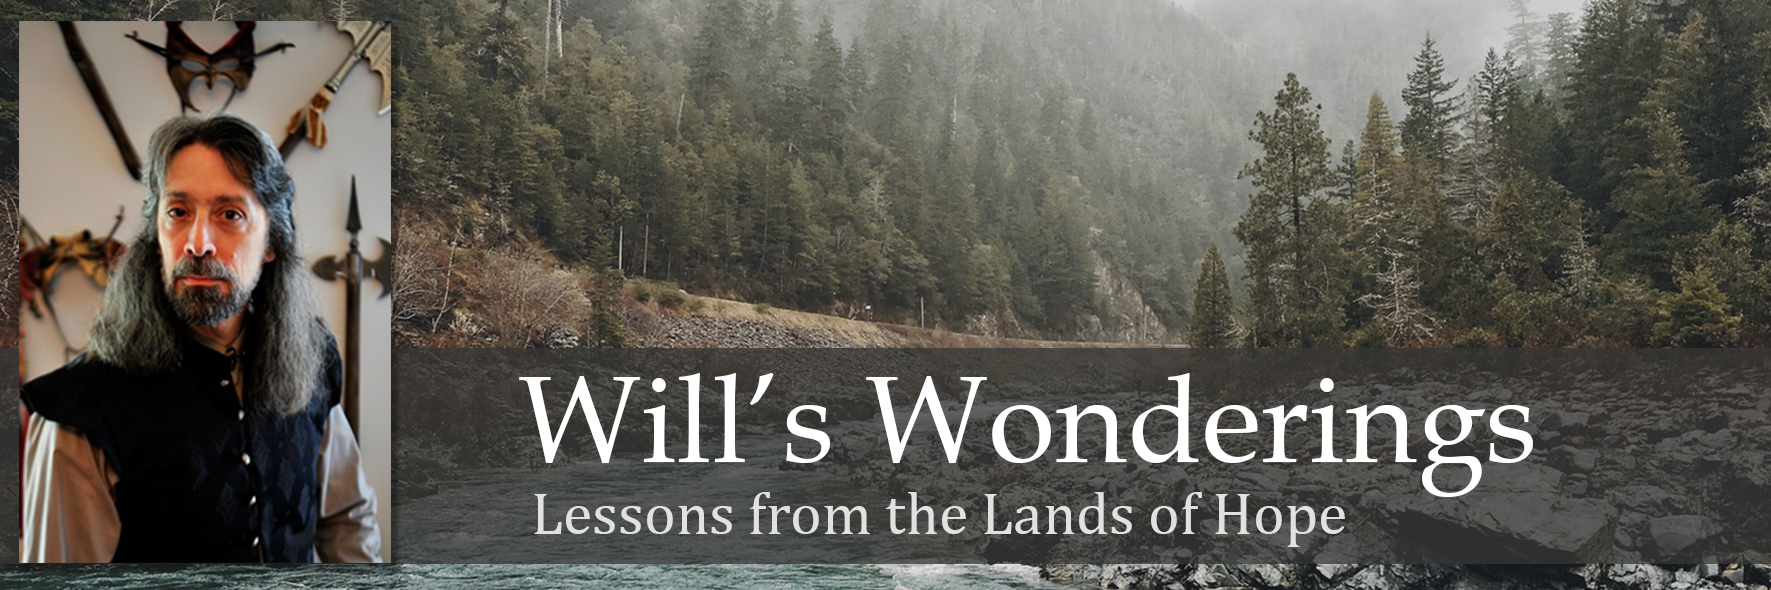 WH_lessons-from-the-lands-2